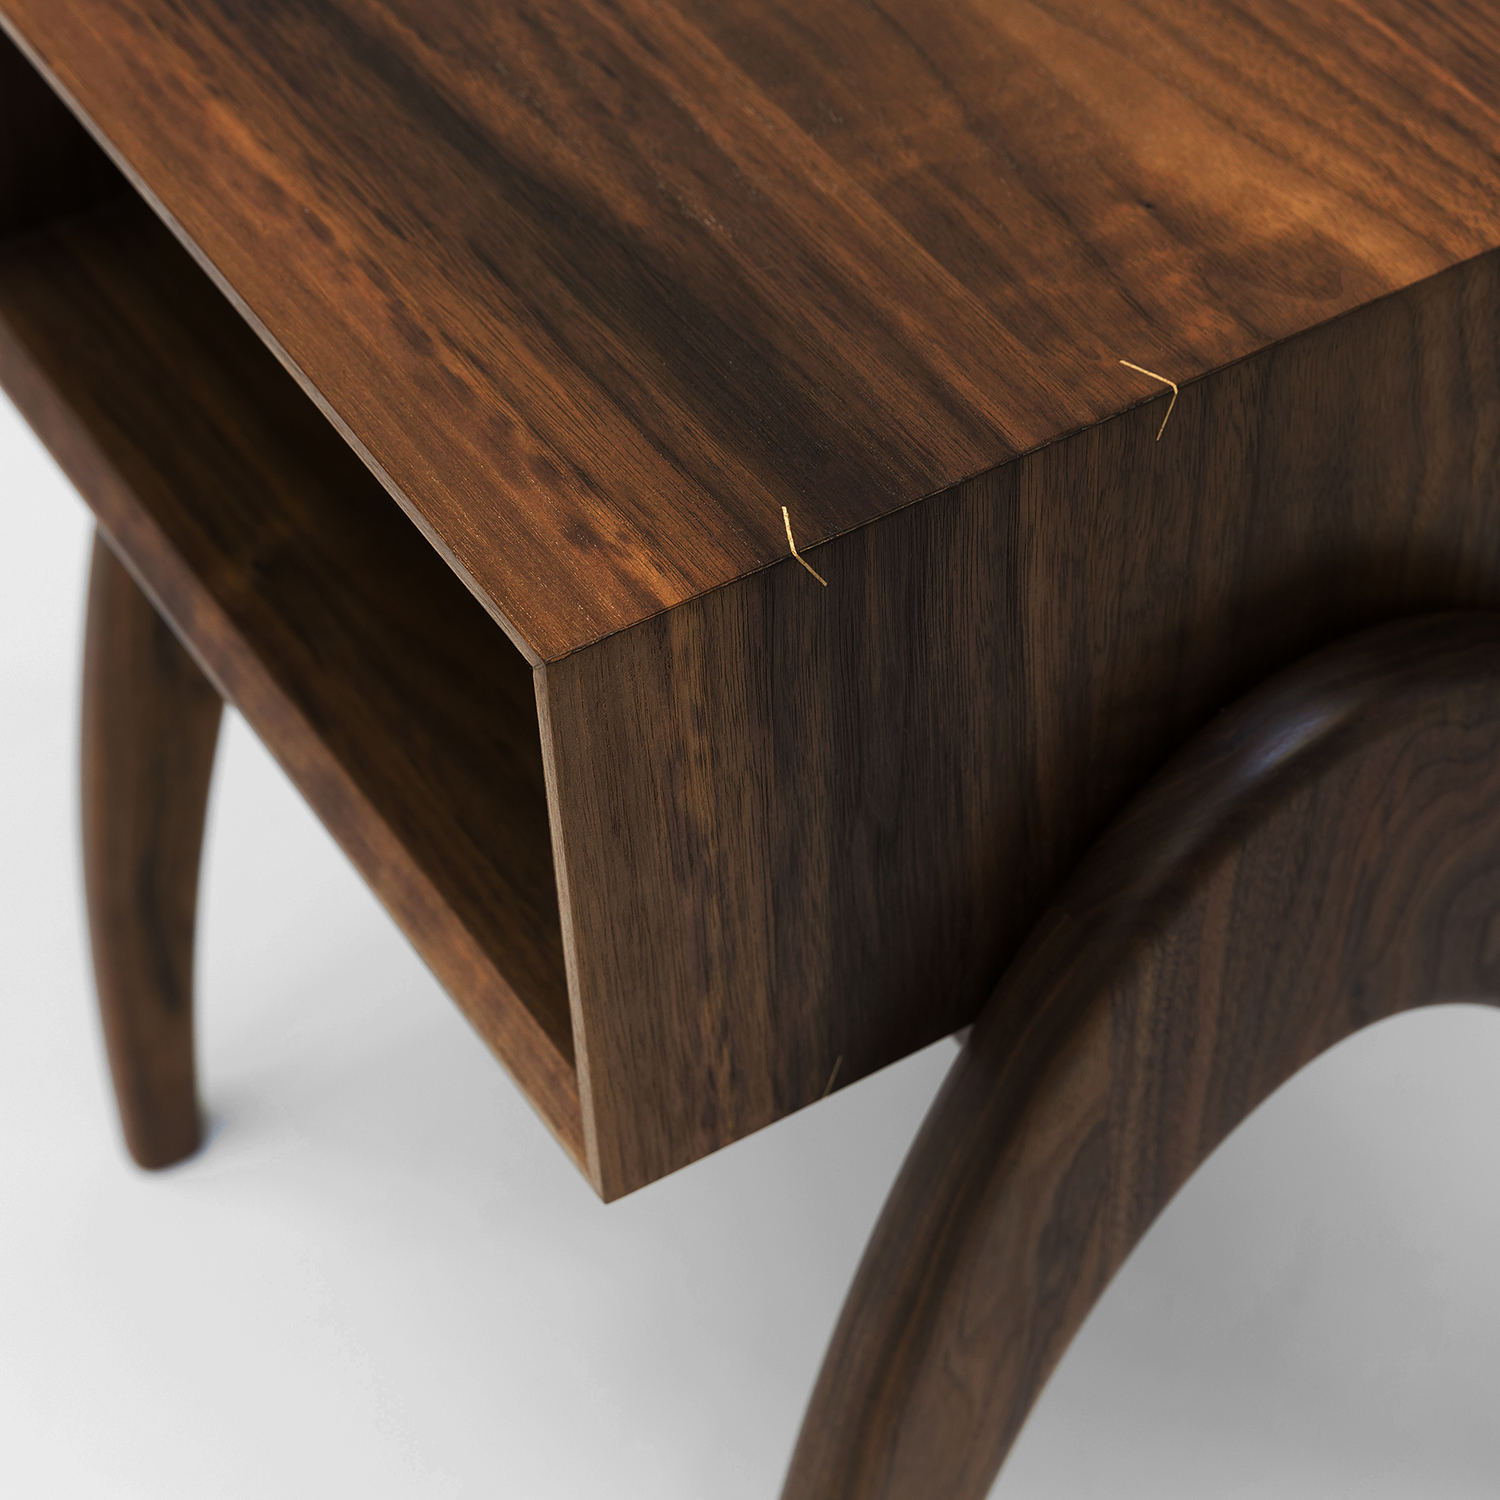 Retrospect sidetable by Alan Flannery Furniture Design low4.jpg